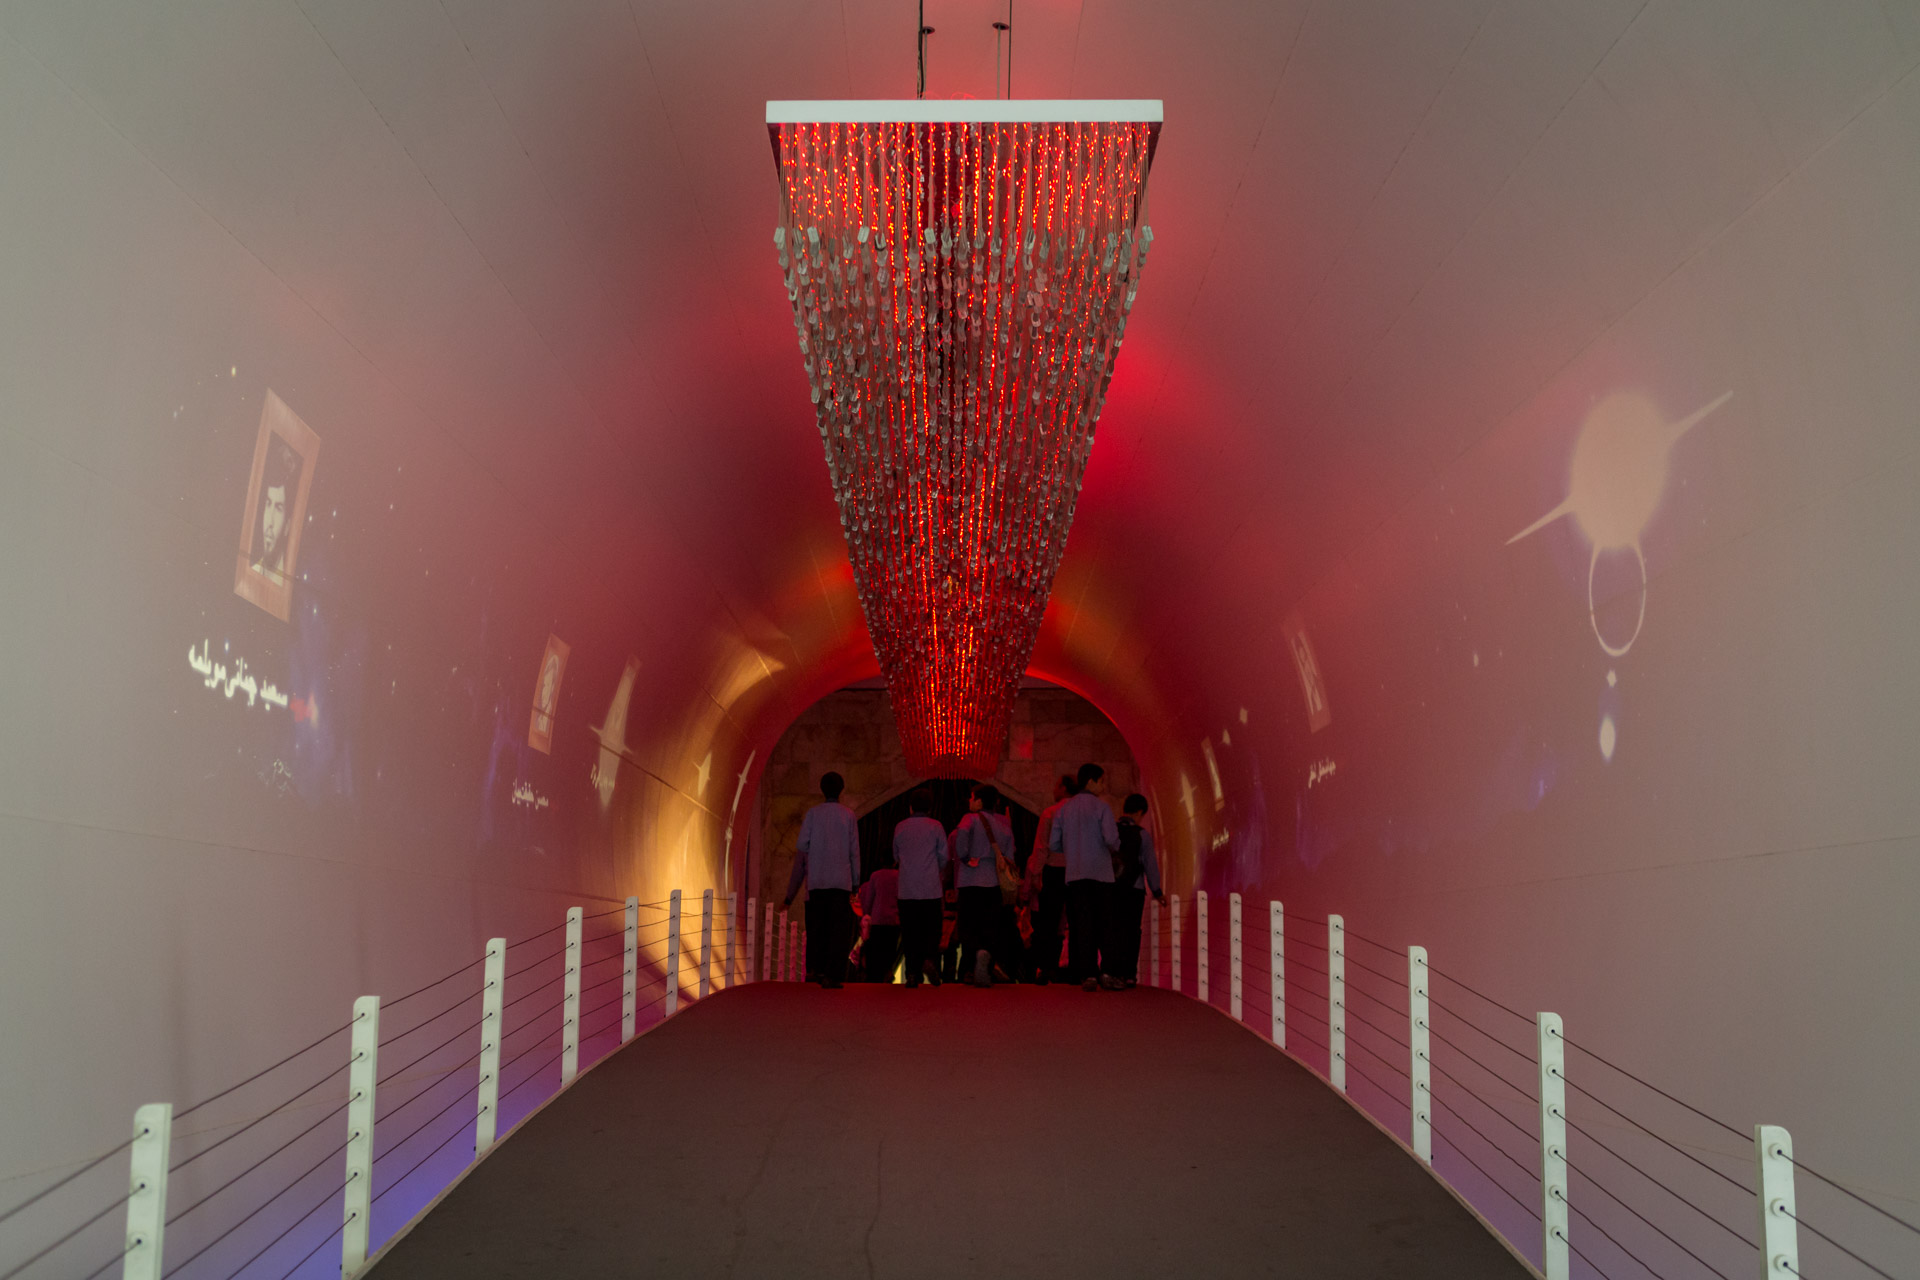 The bridge to the final hall - the hall of martyrdom - is illuminated in red, decorated with dog tags of martyrs of the war, and each side features video art showing photographs of Iranian martyrs ascending upwards, while turning into little stars. Metaphorically, the visitor takes a bridge into heaven.